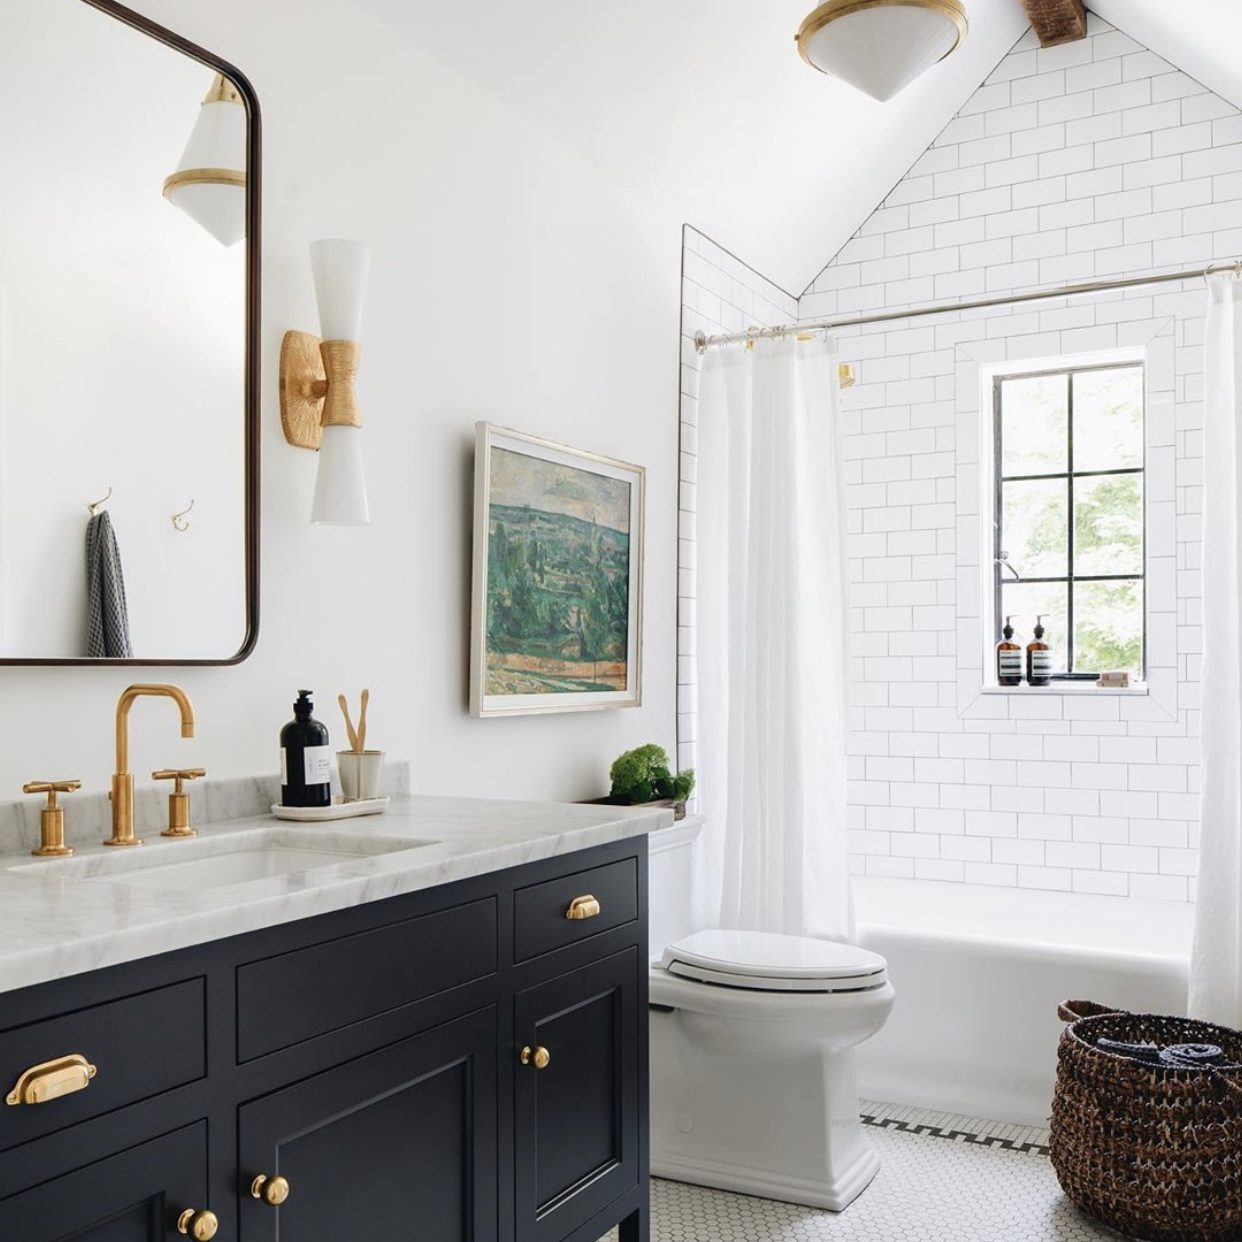 Kenowa Builders: Neutral Bathroom Design, Traditional Bath with subway tile shower and black vanity, Jean Stoffer Design, Michigan custom home builder